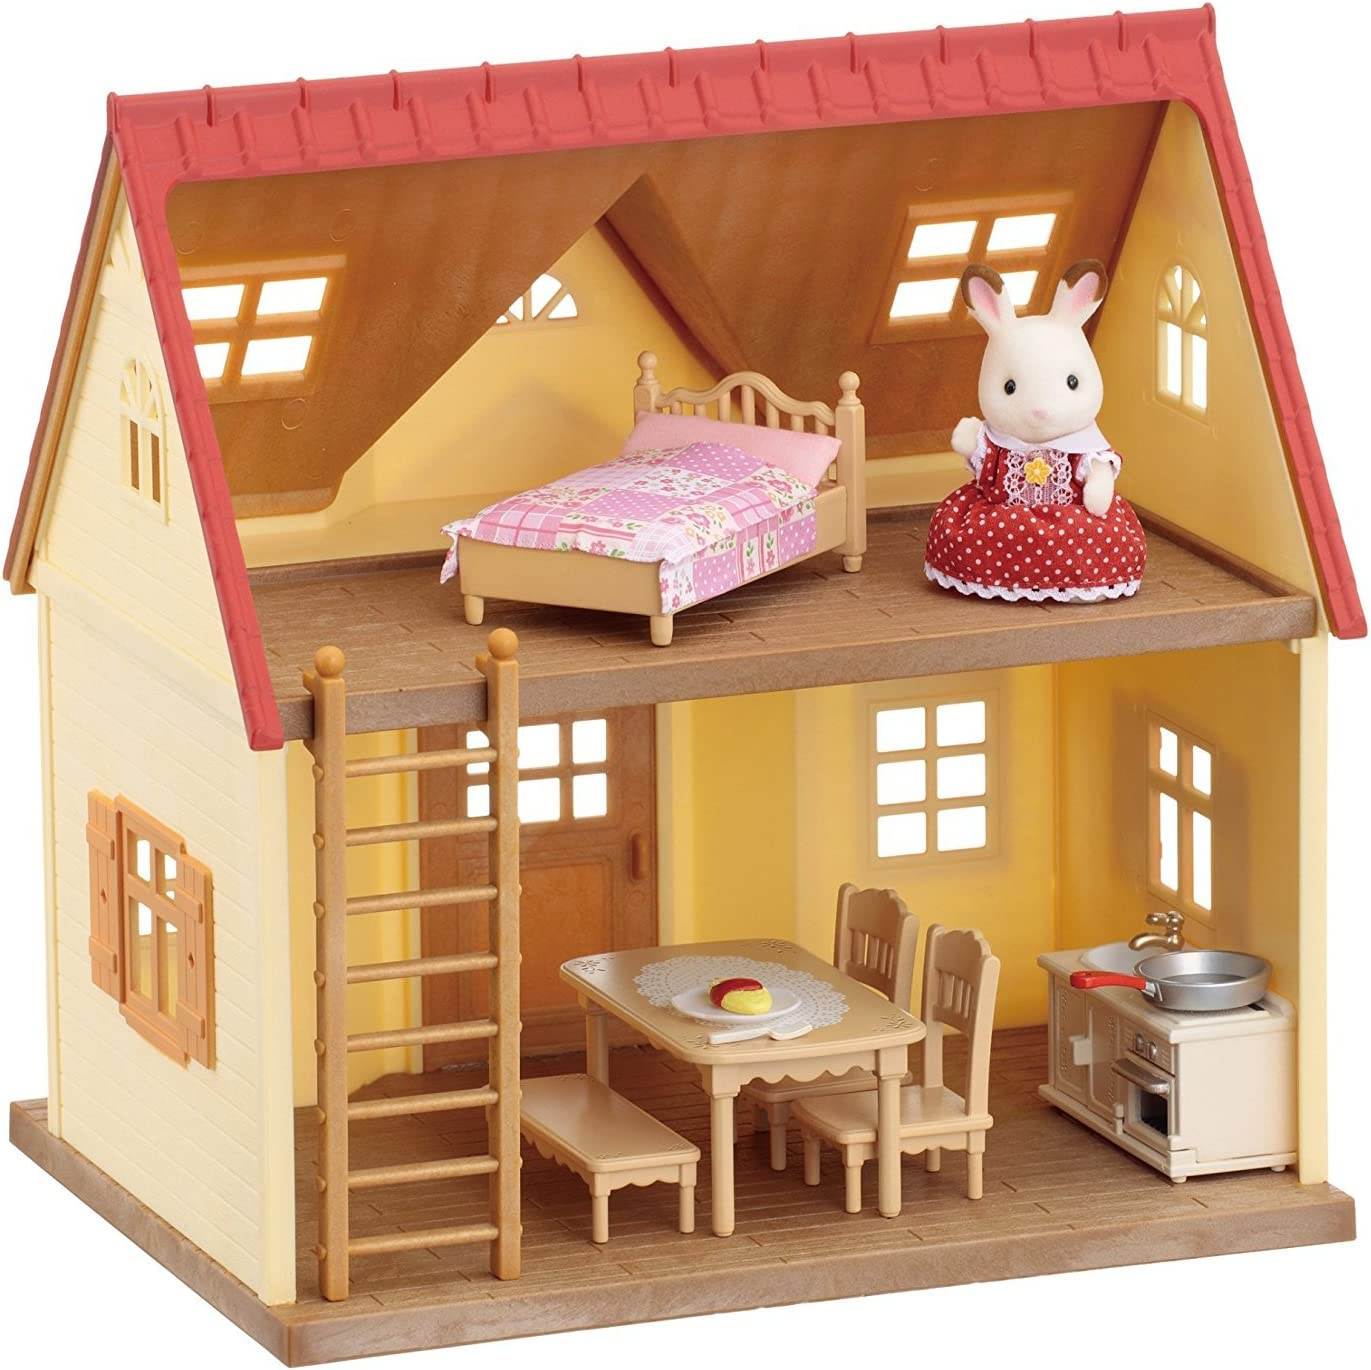 Top 15 Best Calico Critters (2020 Reviews & Buying Guide) 6